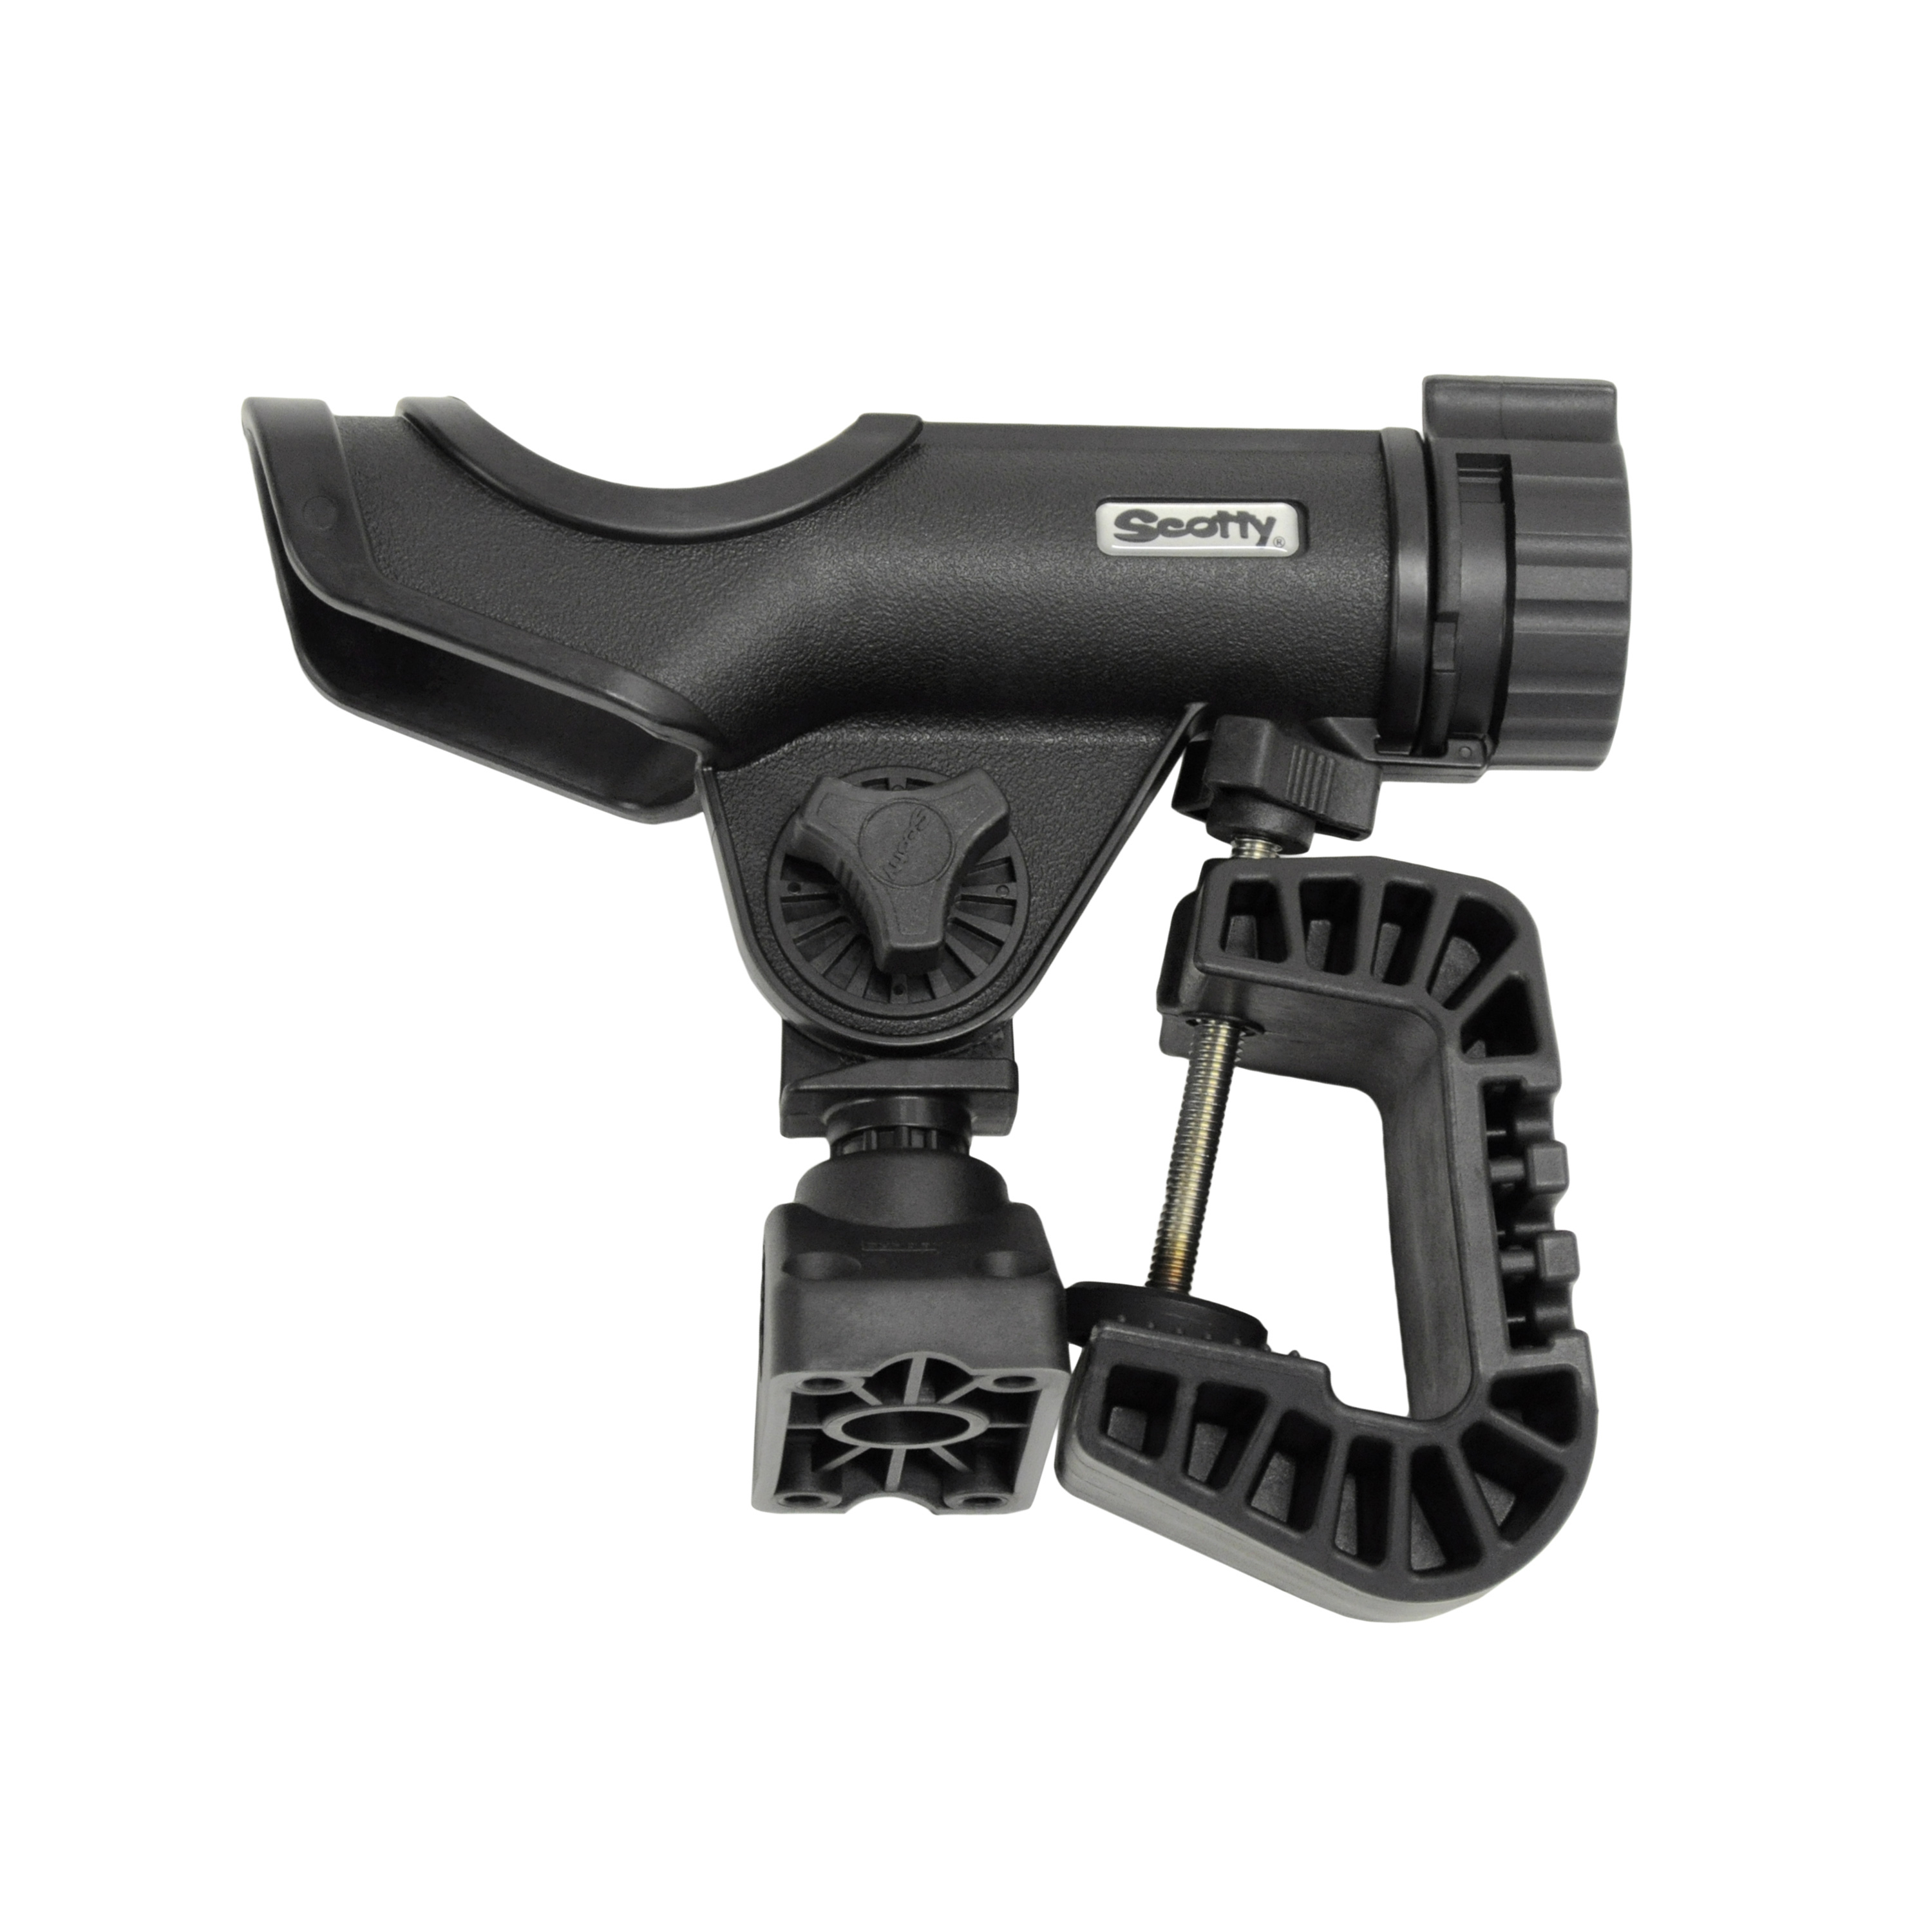 Scotty Powerlock Rod Holder with Portable Clamp Mount by Scotty